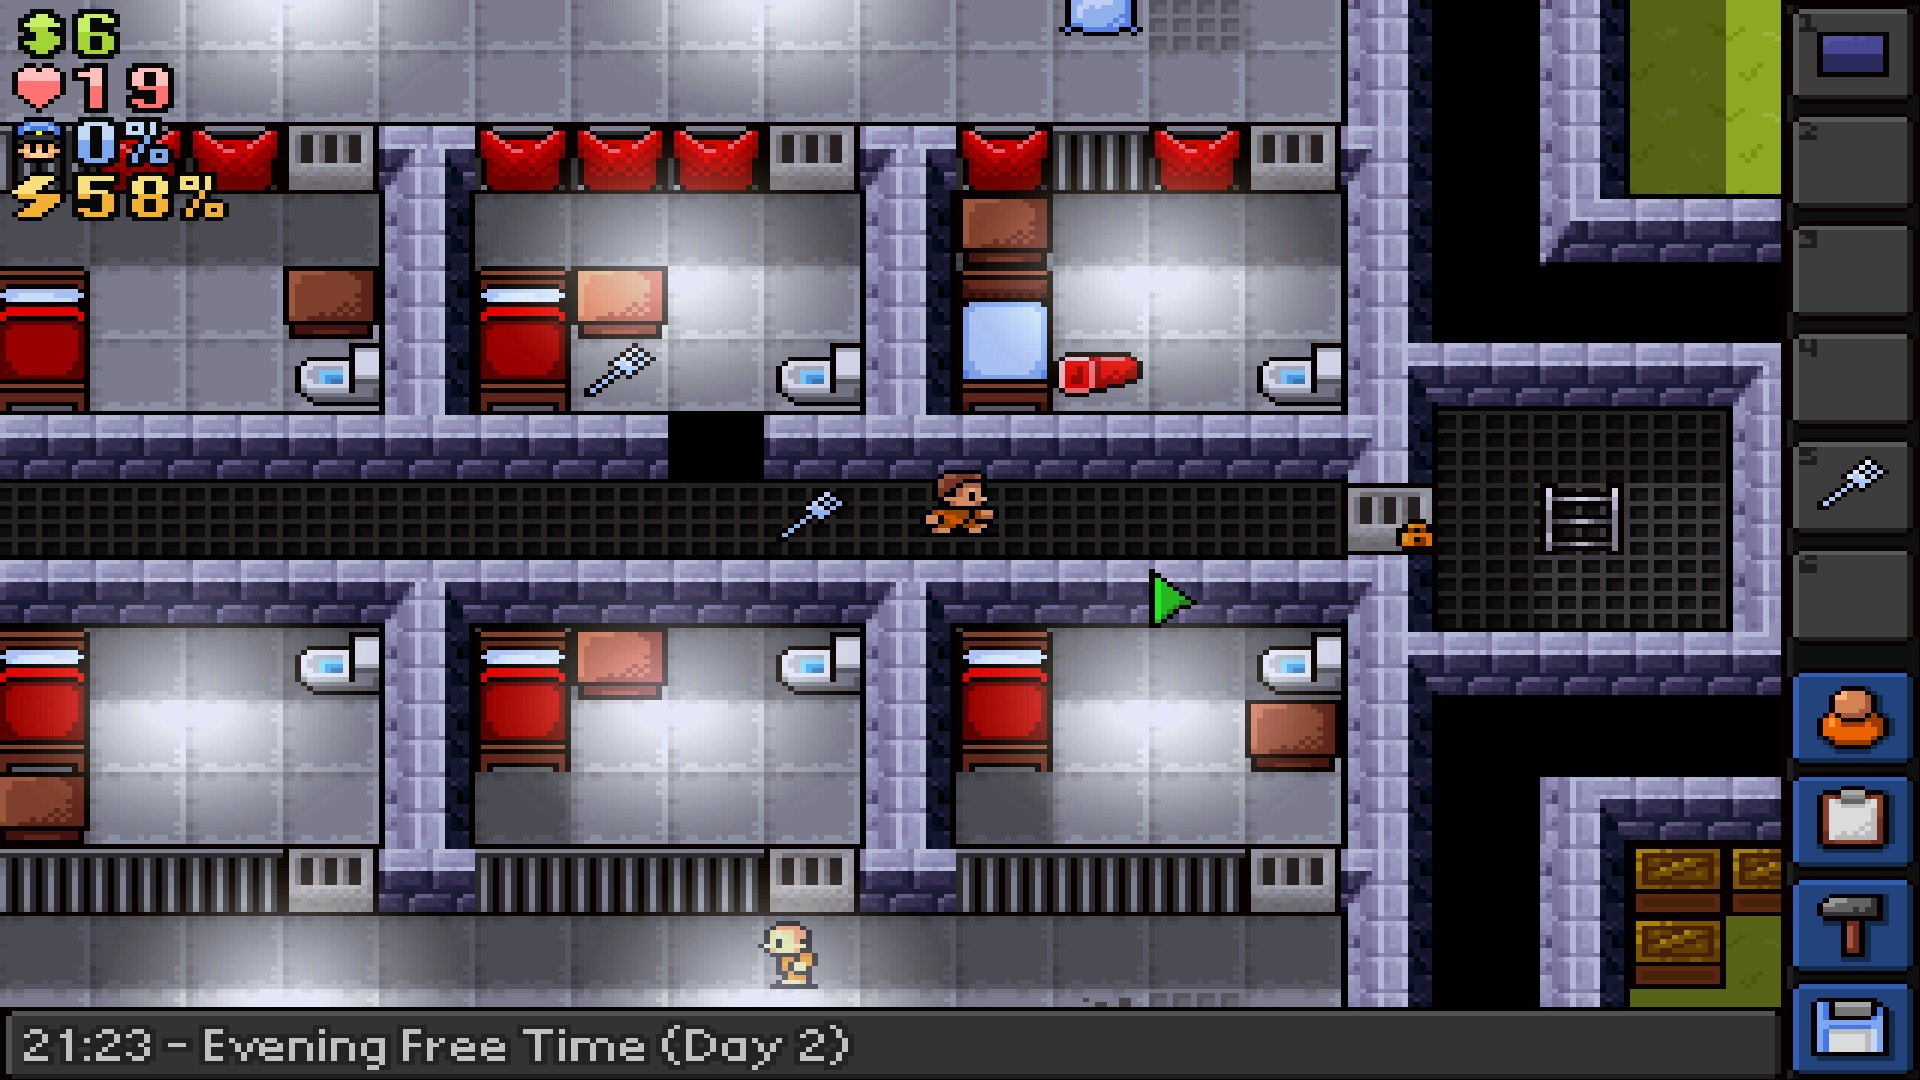 The Escapists - Fhurst Peak Correctional Facility [Online Game Code] by Team17 (Image #6)